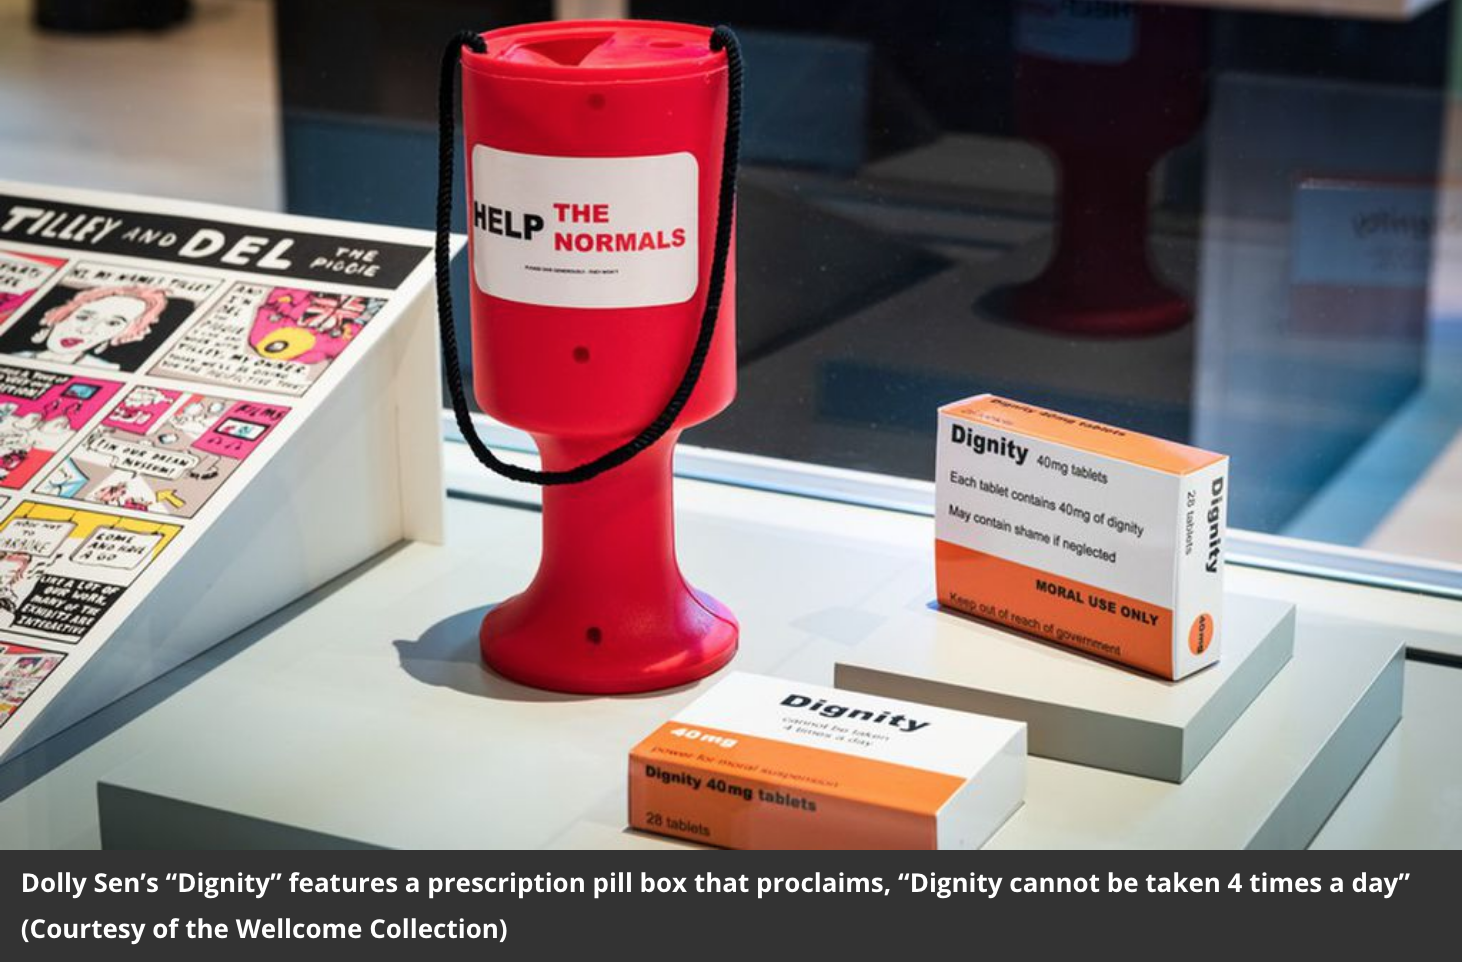 "A picture of a red plastic charity tin saying 'Help the Normals' and 2 boxes of Dignity pills that say ""Dignity cannot be taken 4 times a day"" The credit in the photo says Dolly' Sen's '""Dignity"" is shown (Courtesy of the Wellcome Collection)."